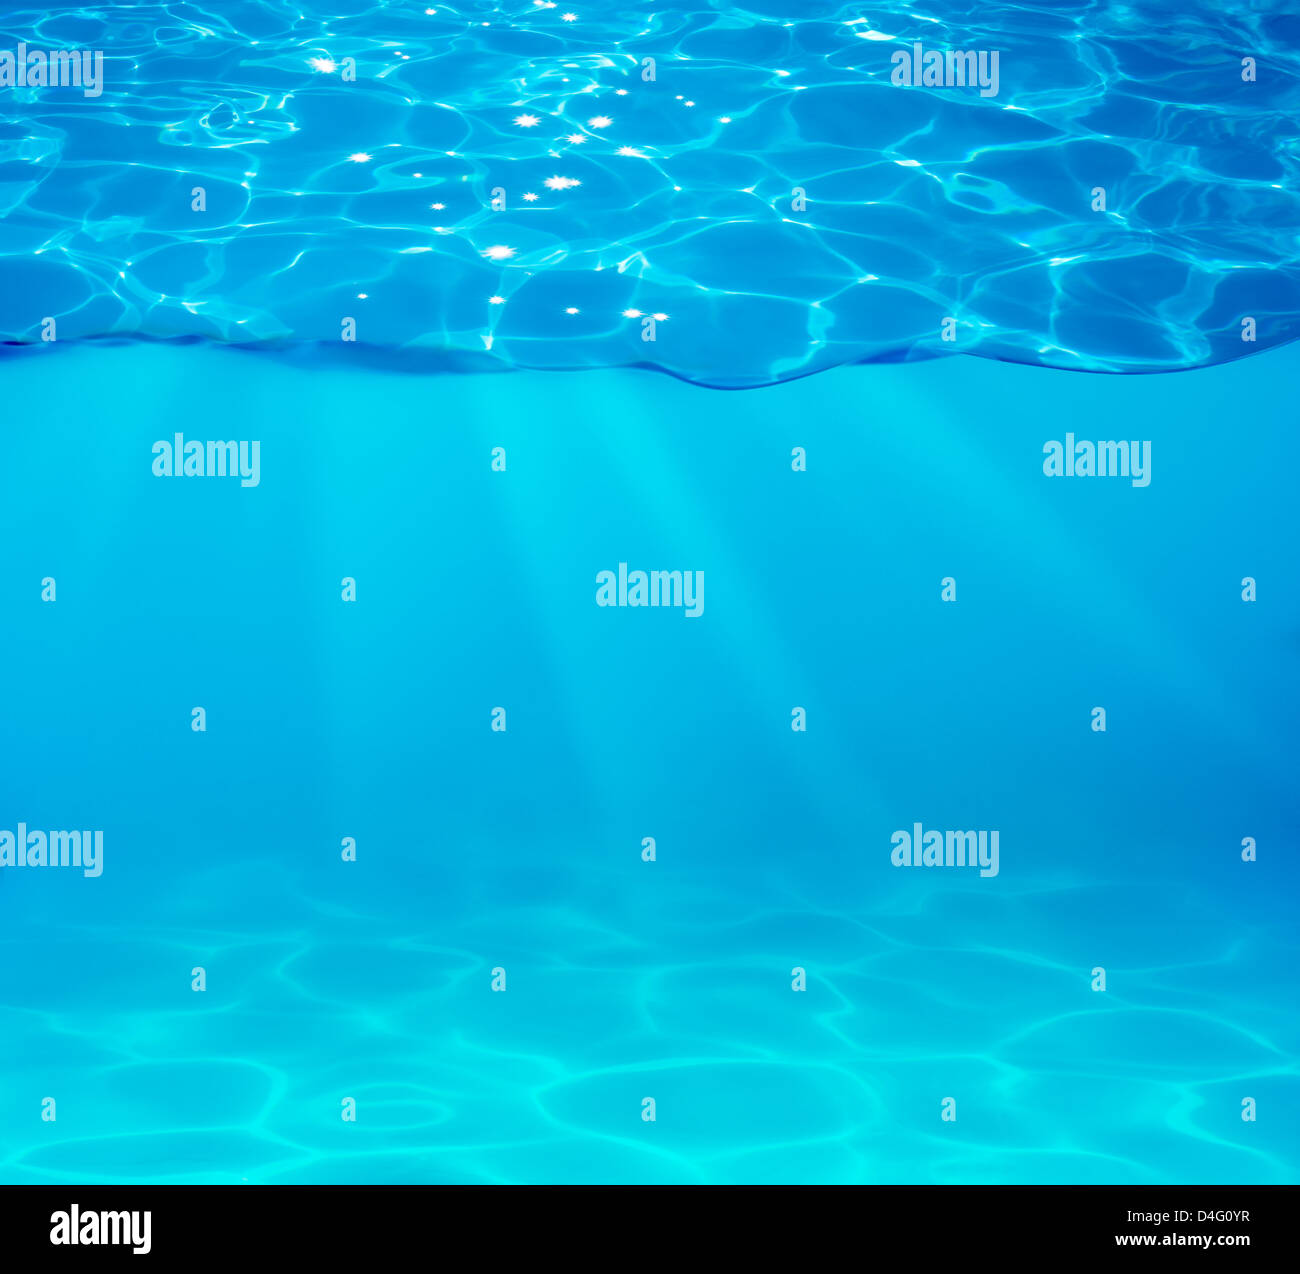 pool water with sparkles on surface - Stock Image